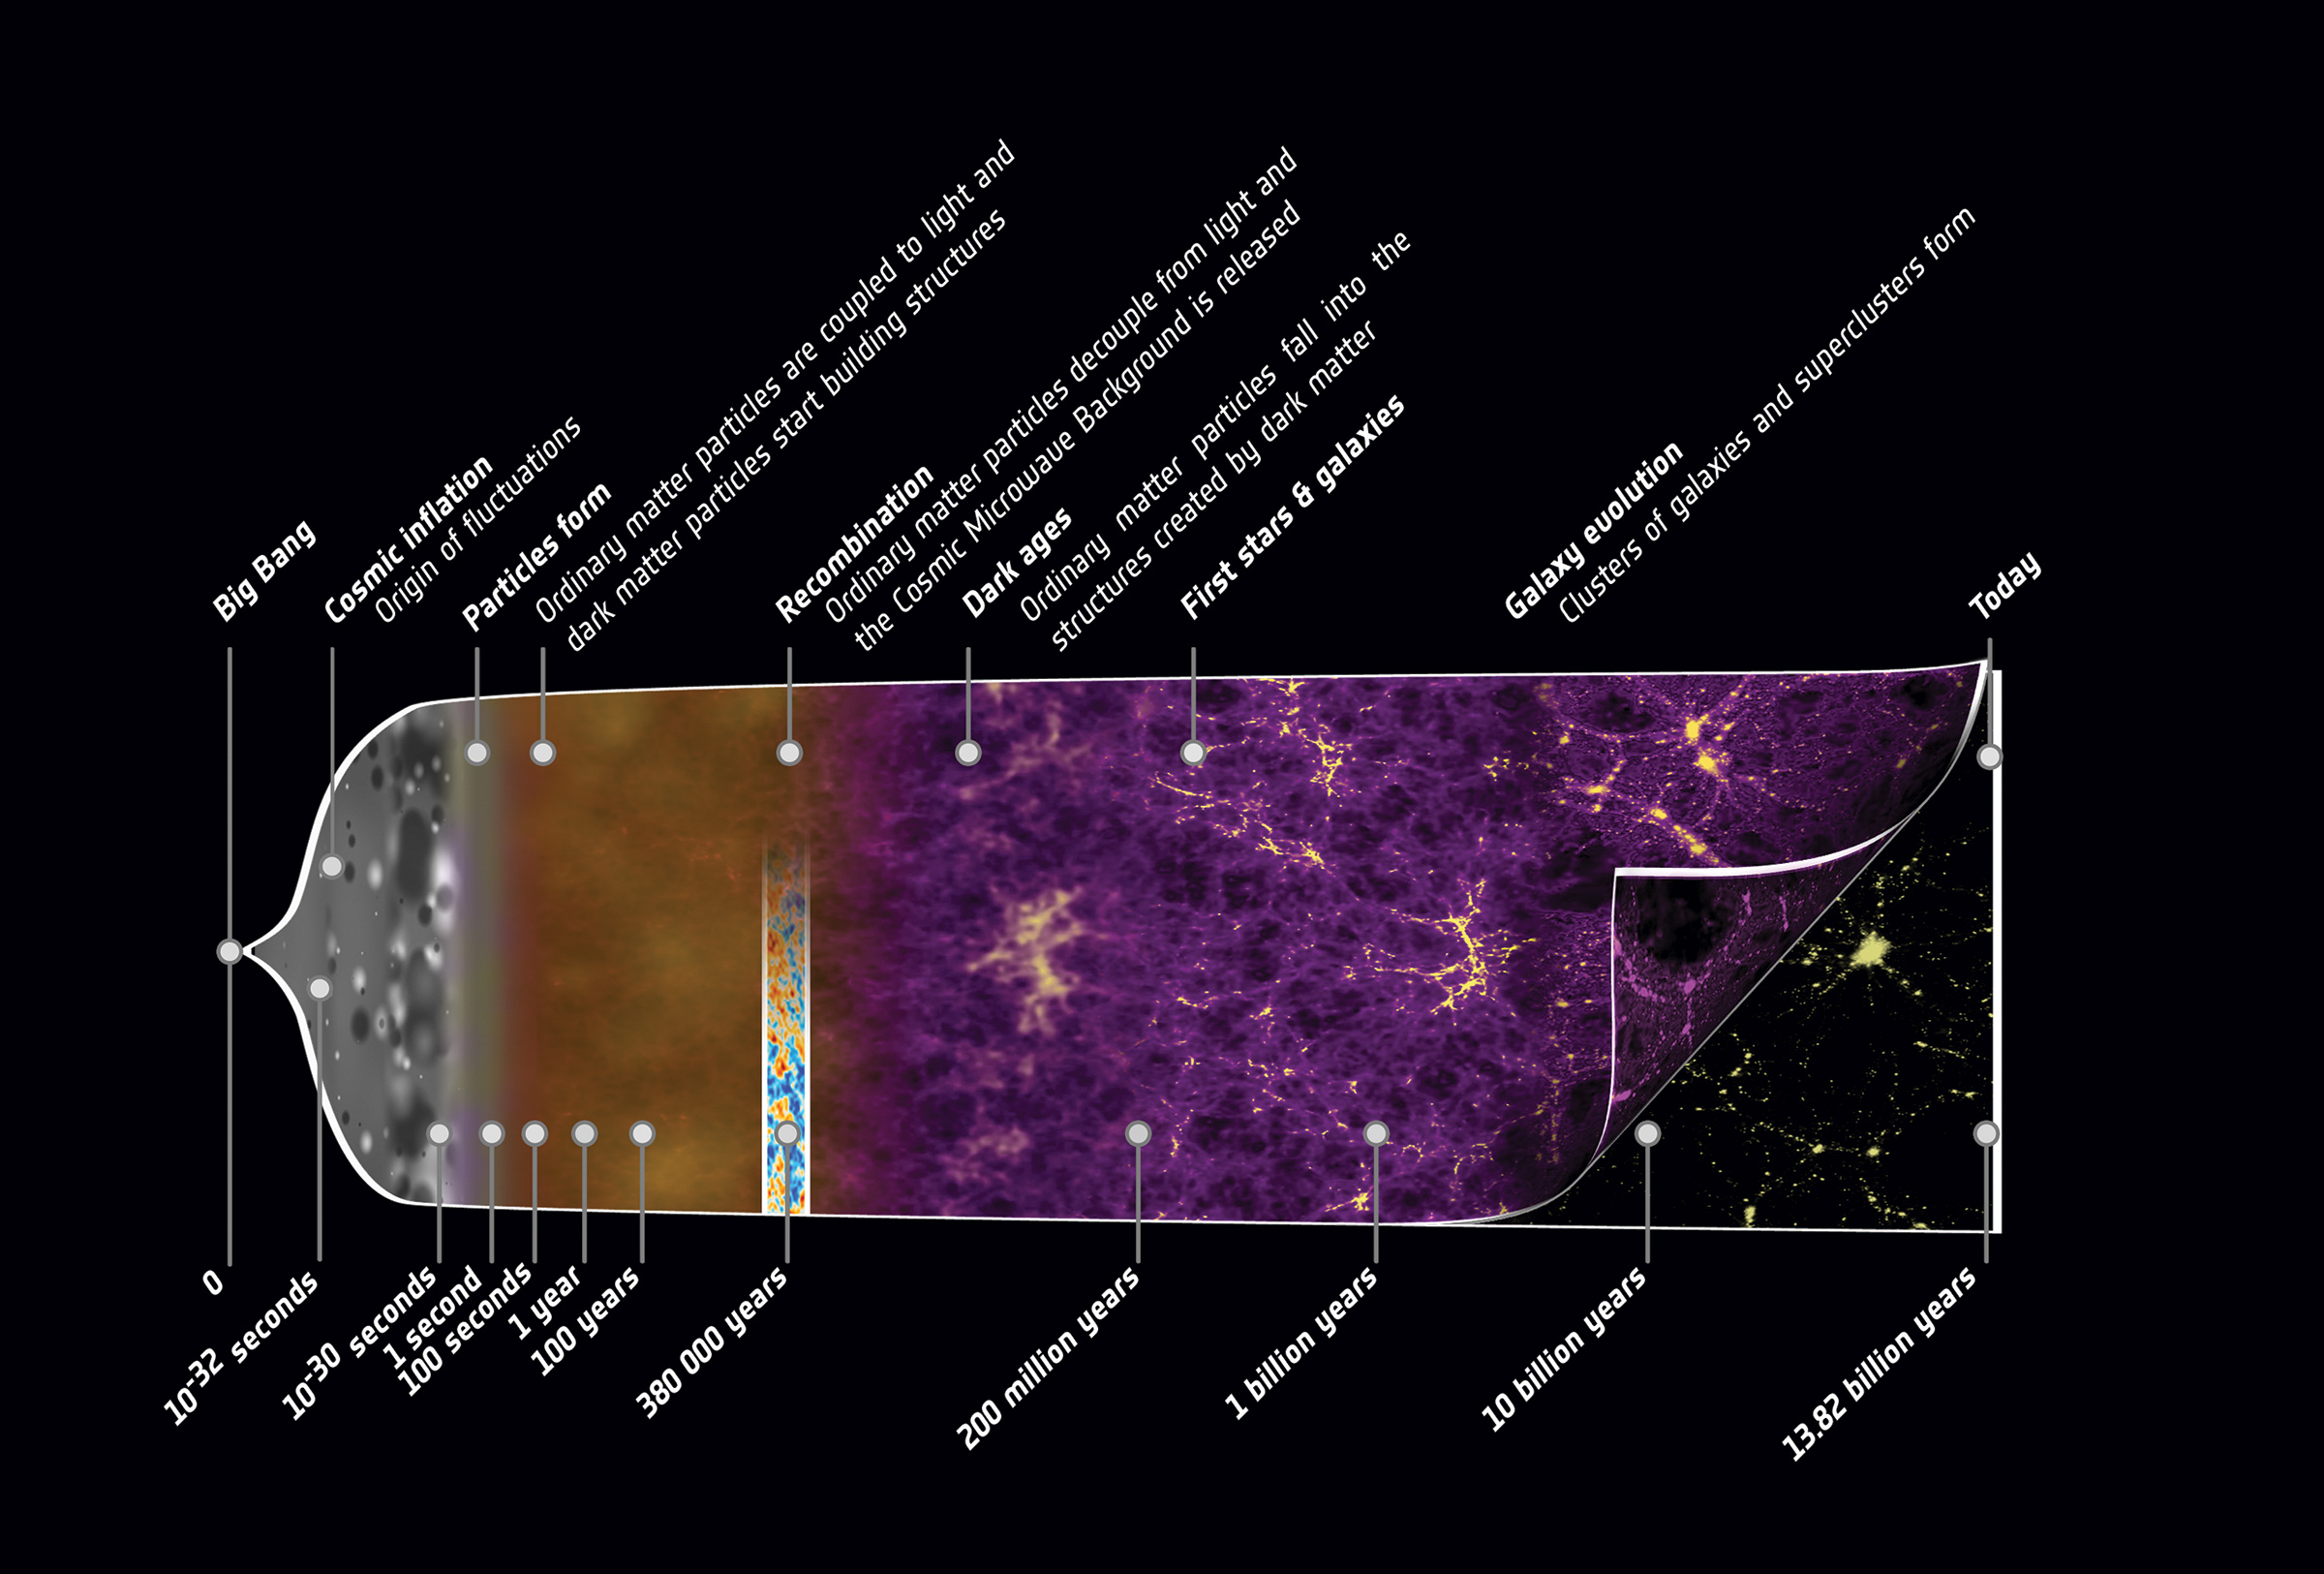 Expansion history of the universe, from the Big Bang to the accelerated expansion we experience today. credit: ESA/C. Carreau